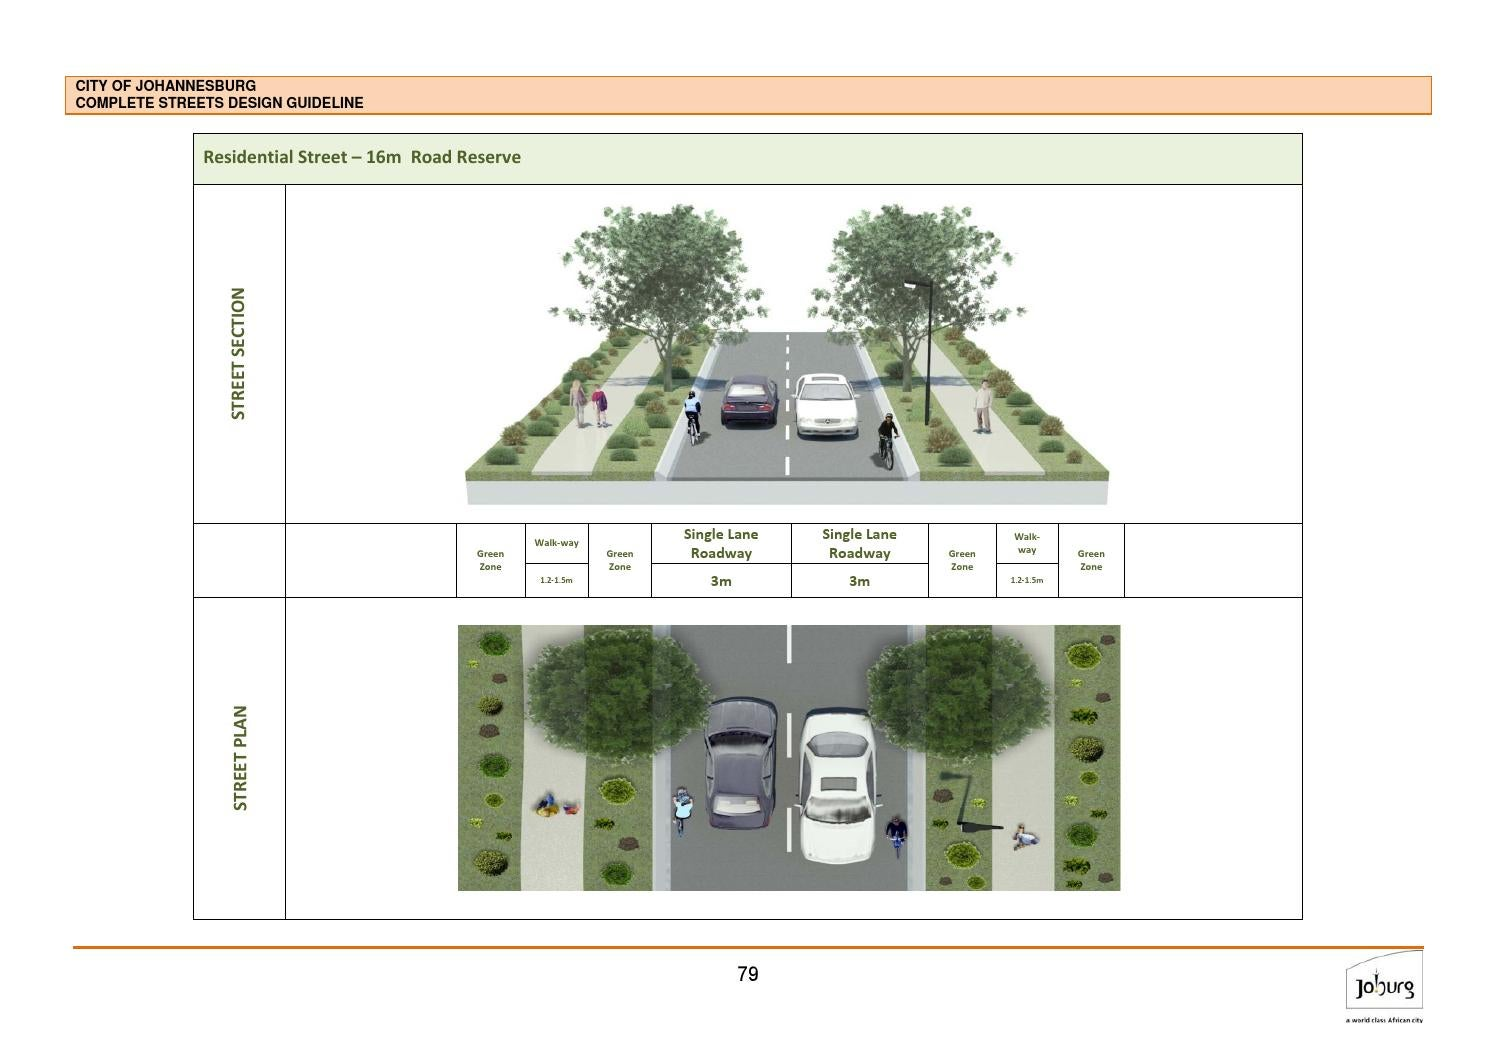 Complete Streets Design Guideline Manual By City Of Johannesburg Joburg Page 82